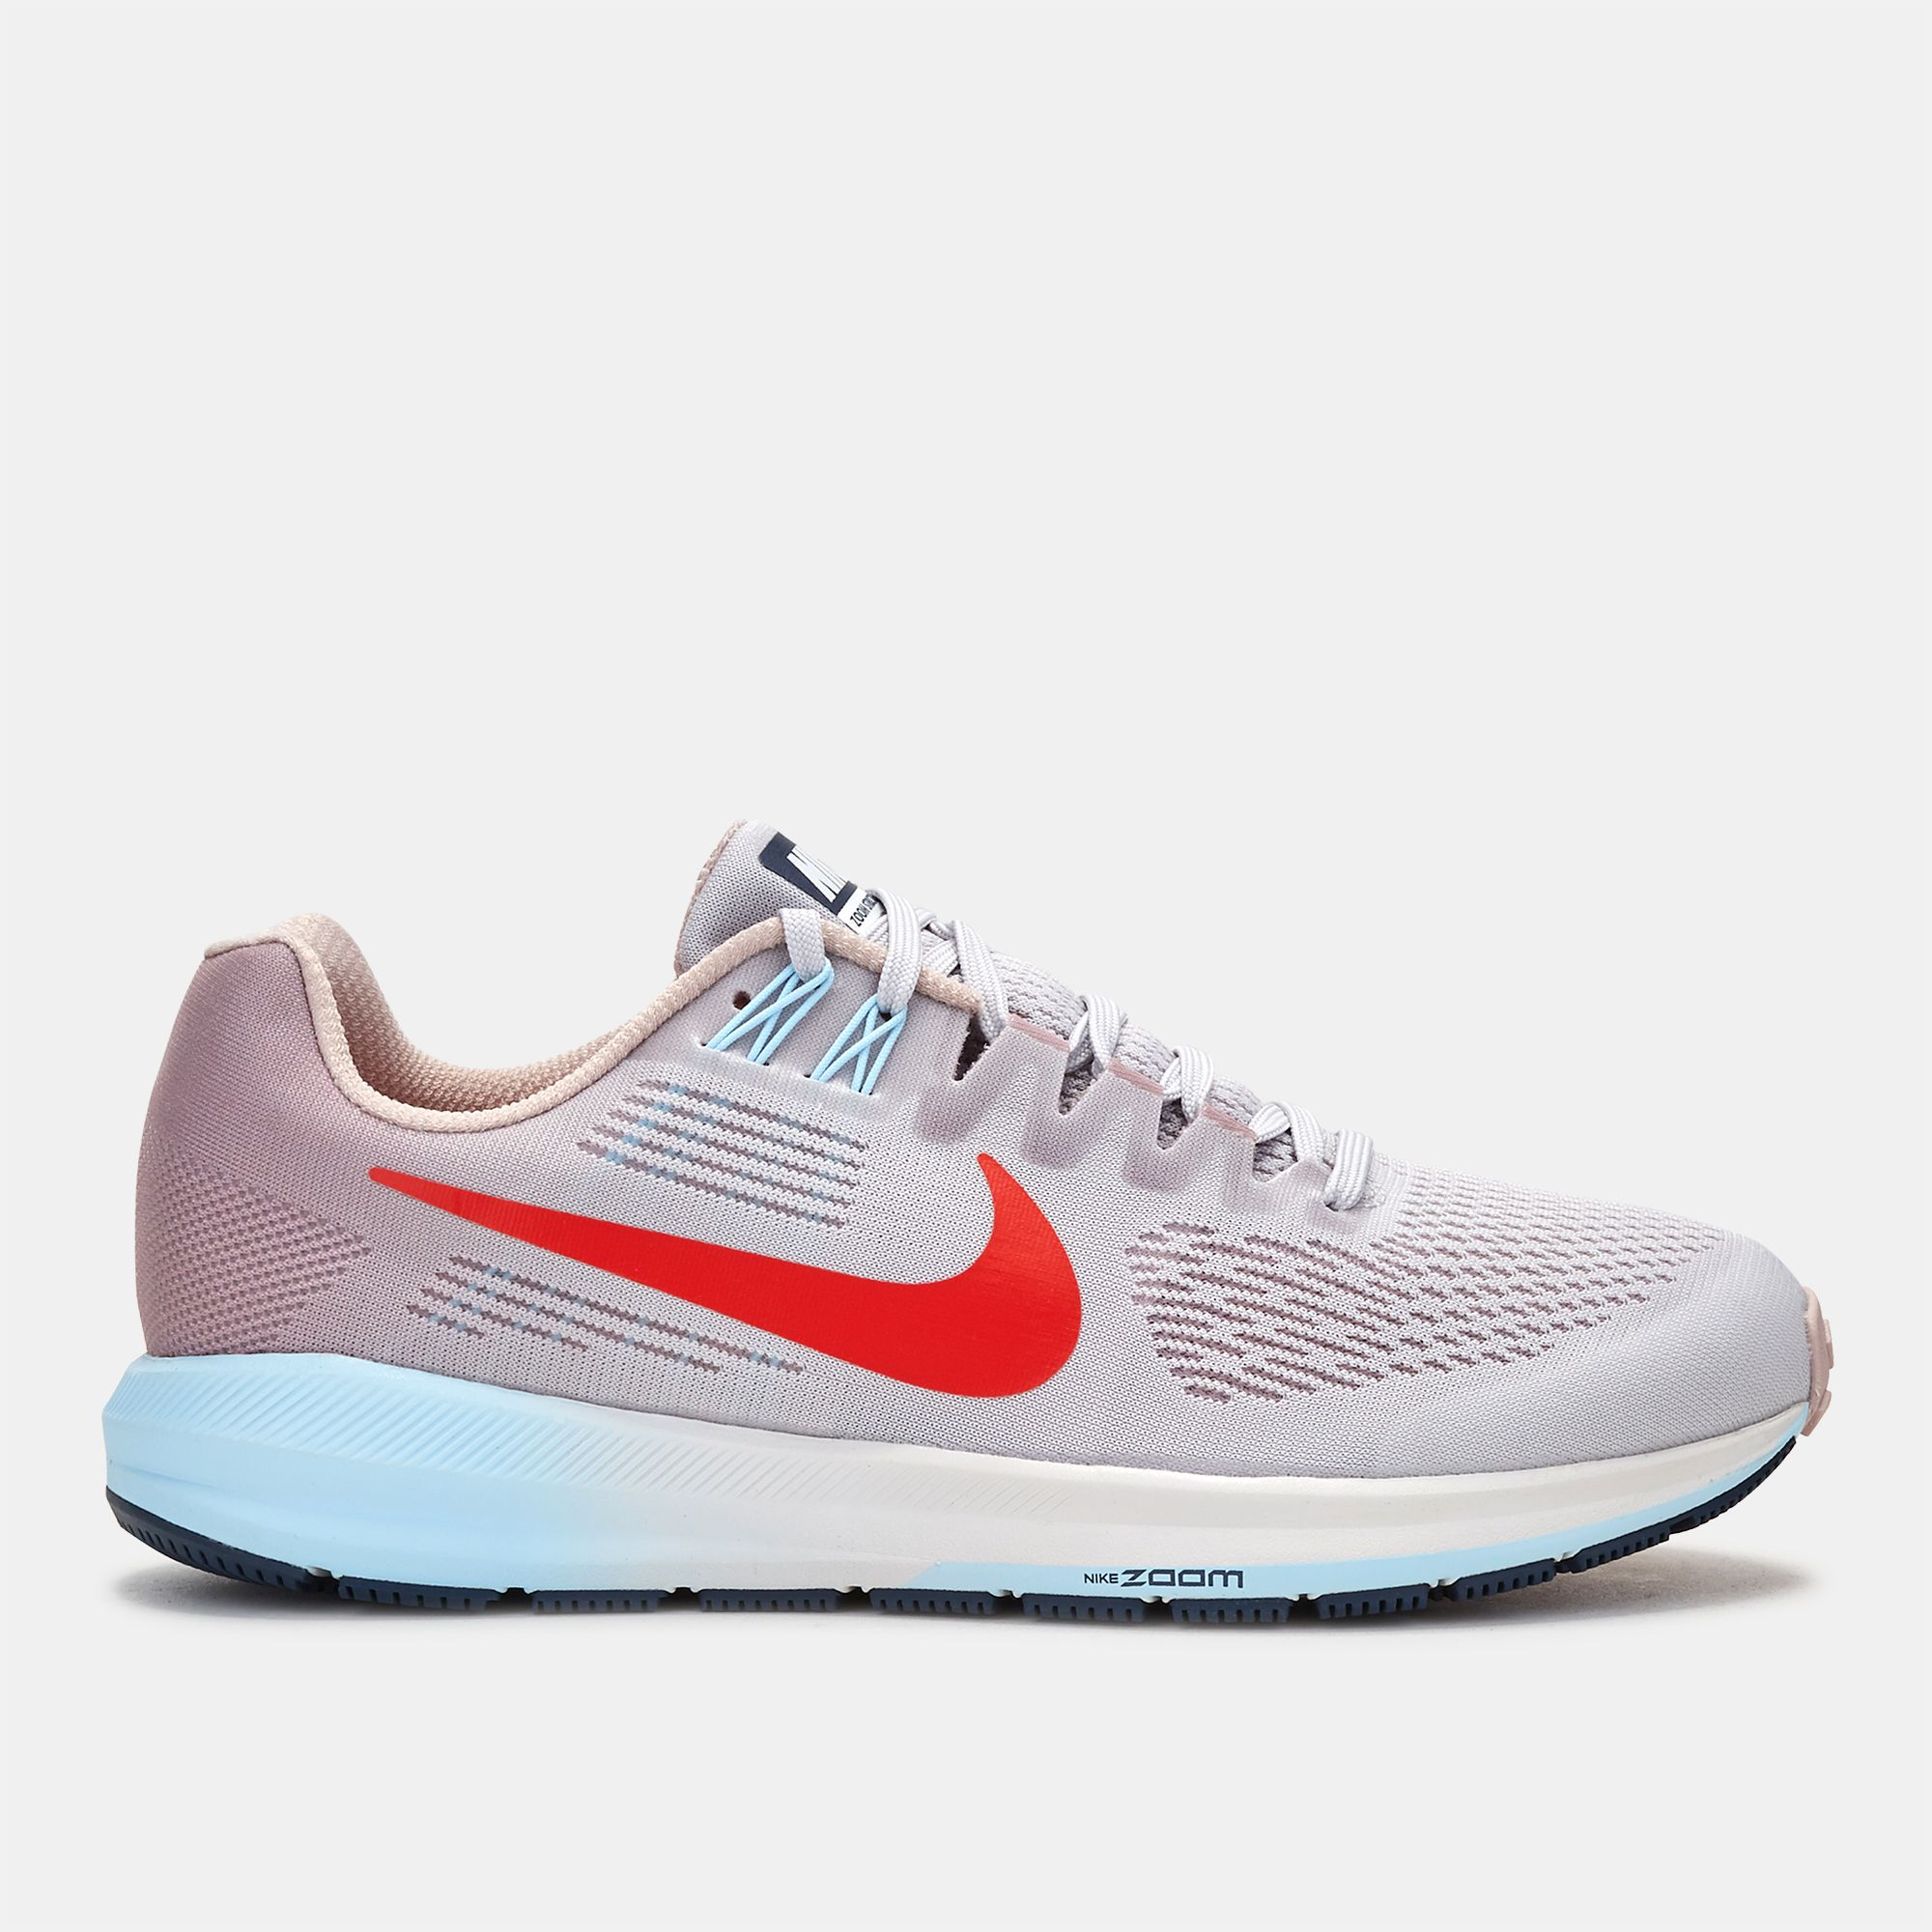 ab58a9d1f72 ... where to buy nike air zoom structure 21 running shoe 6a40e 2aeb5